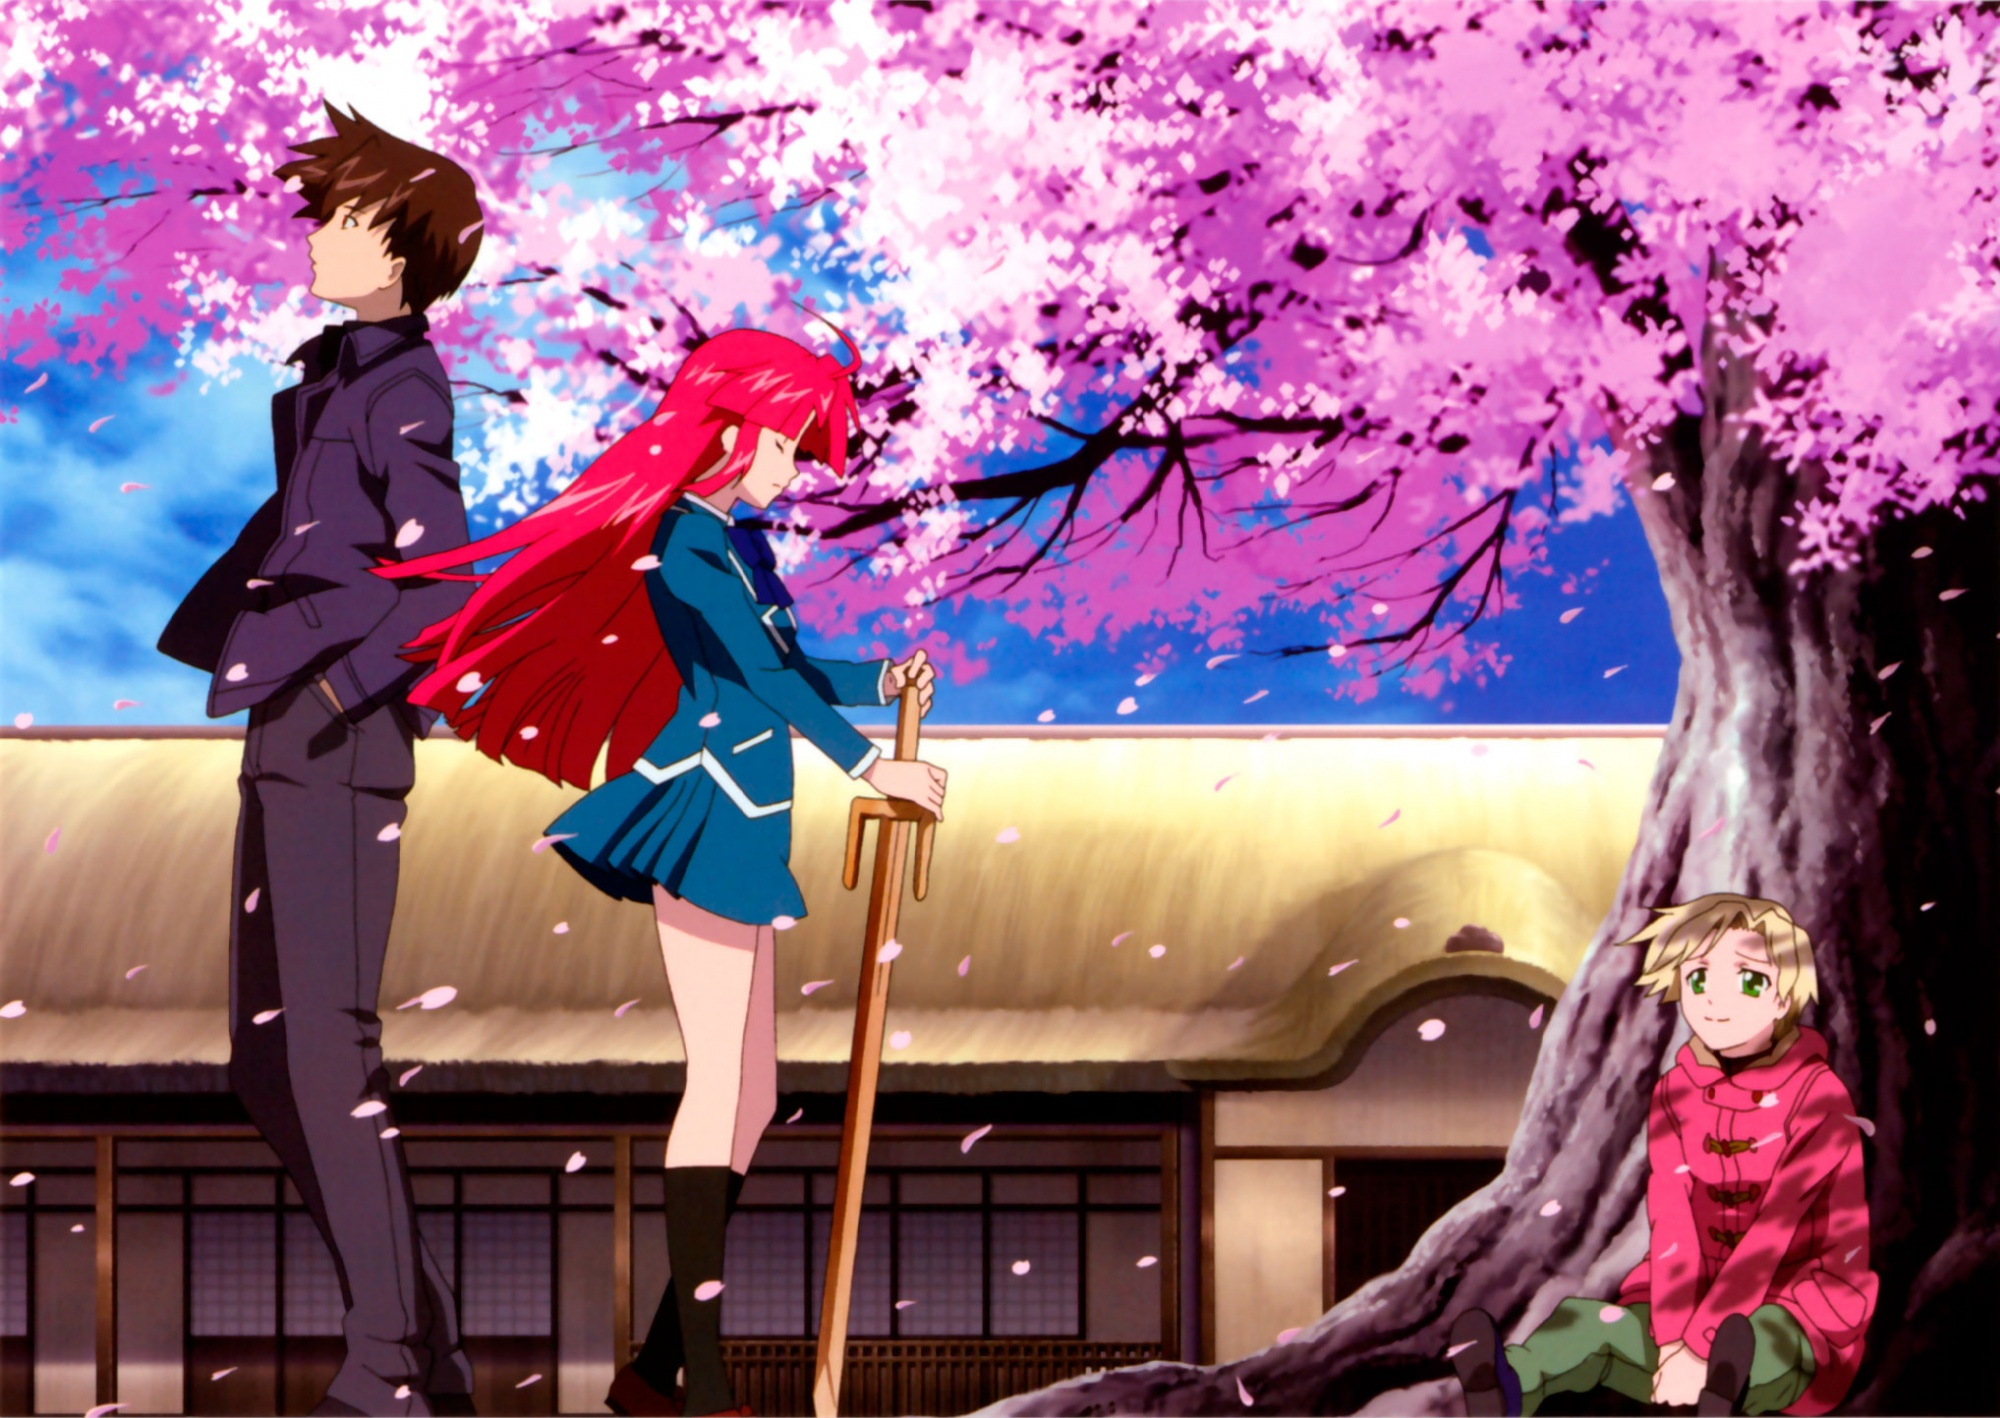 No Love Hd Wallpaper : 11 Kaze No Stigma HD Wallpapers Backgrounds - Wallpaper Abyss